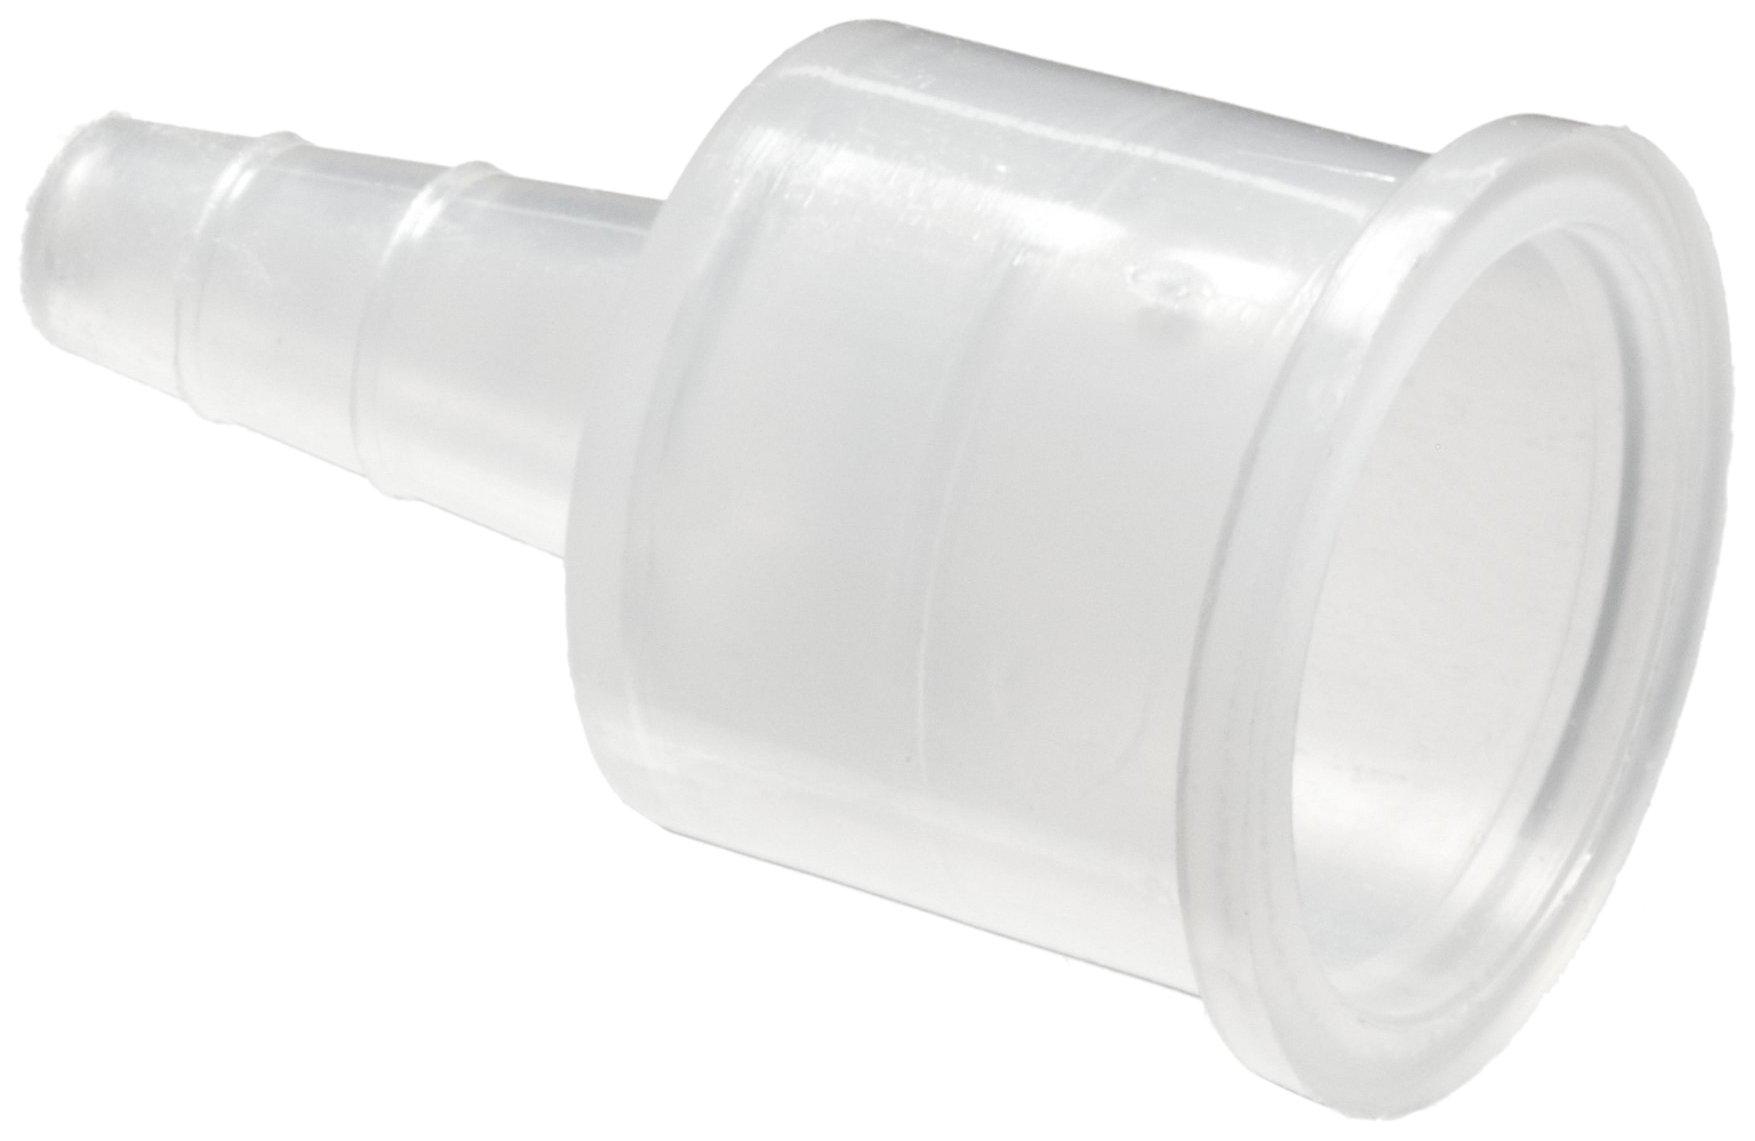 Bel-Art Replacement Polypropylene Tube Fittings; For ¼ to ⅜ in. I.D. Tubes (Pack of 12) (F19965-0000)